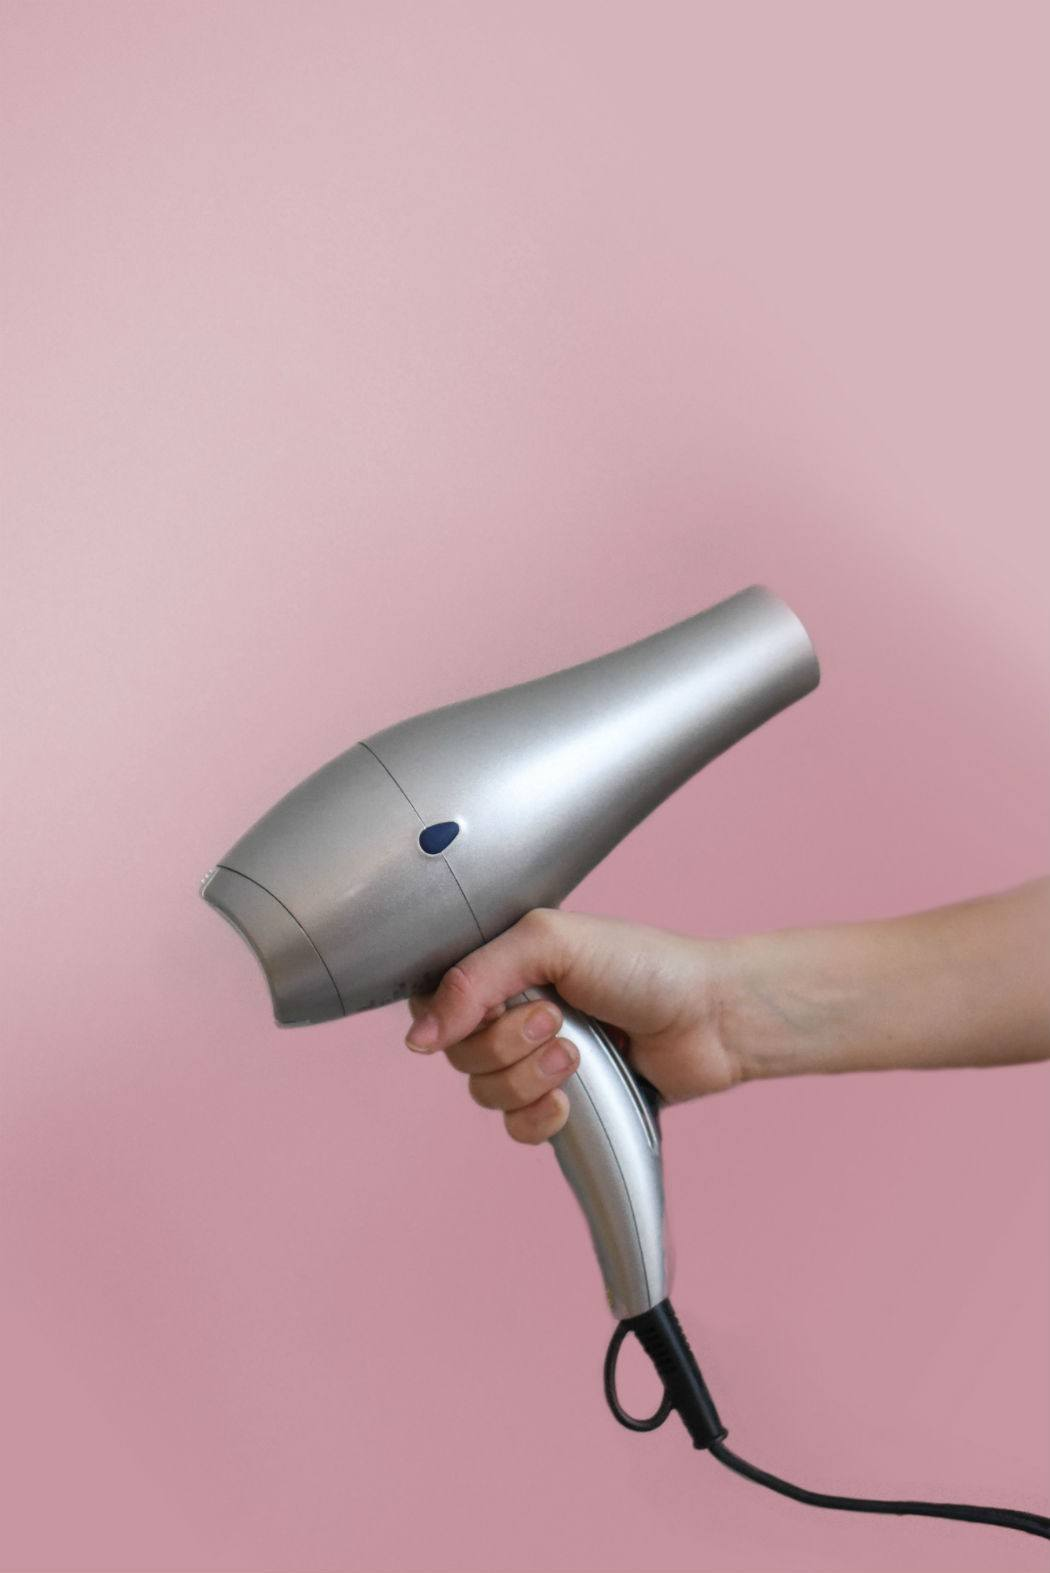 hand holds a travel hair dryer